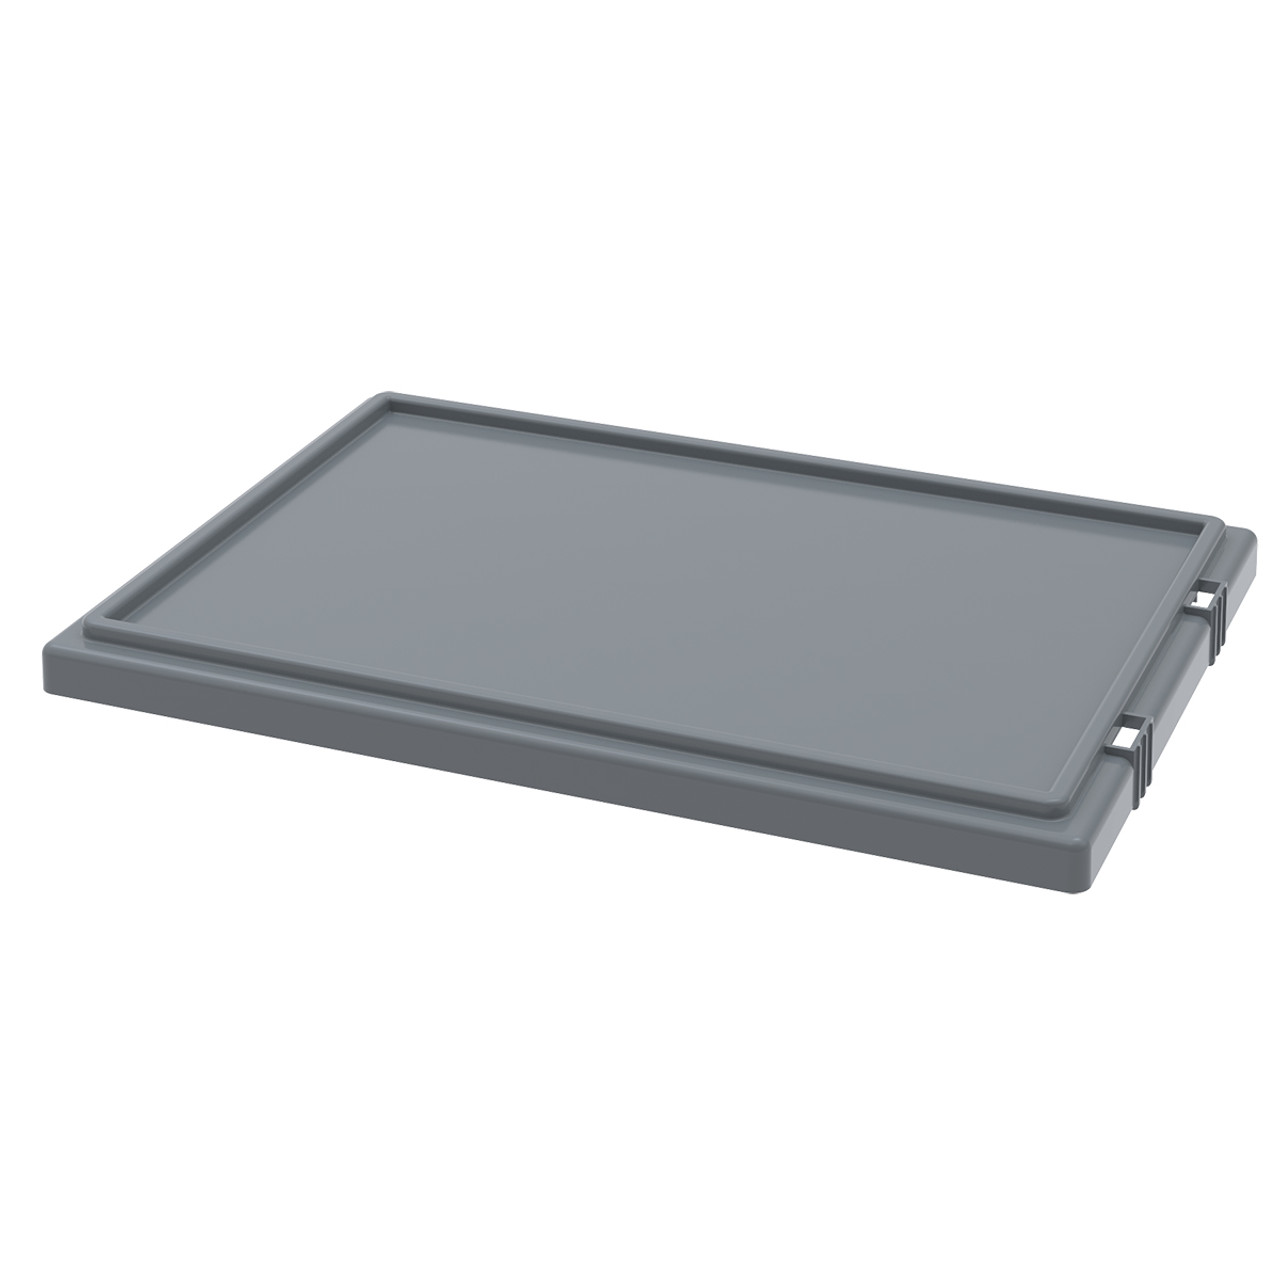 Lid for Nest & Stack Totes 35200, Gray  35201GREY